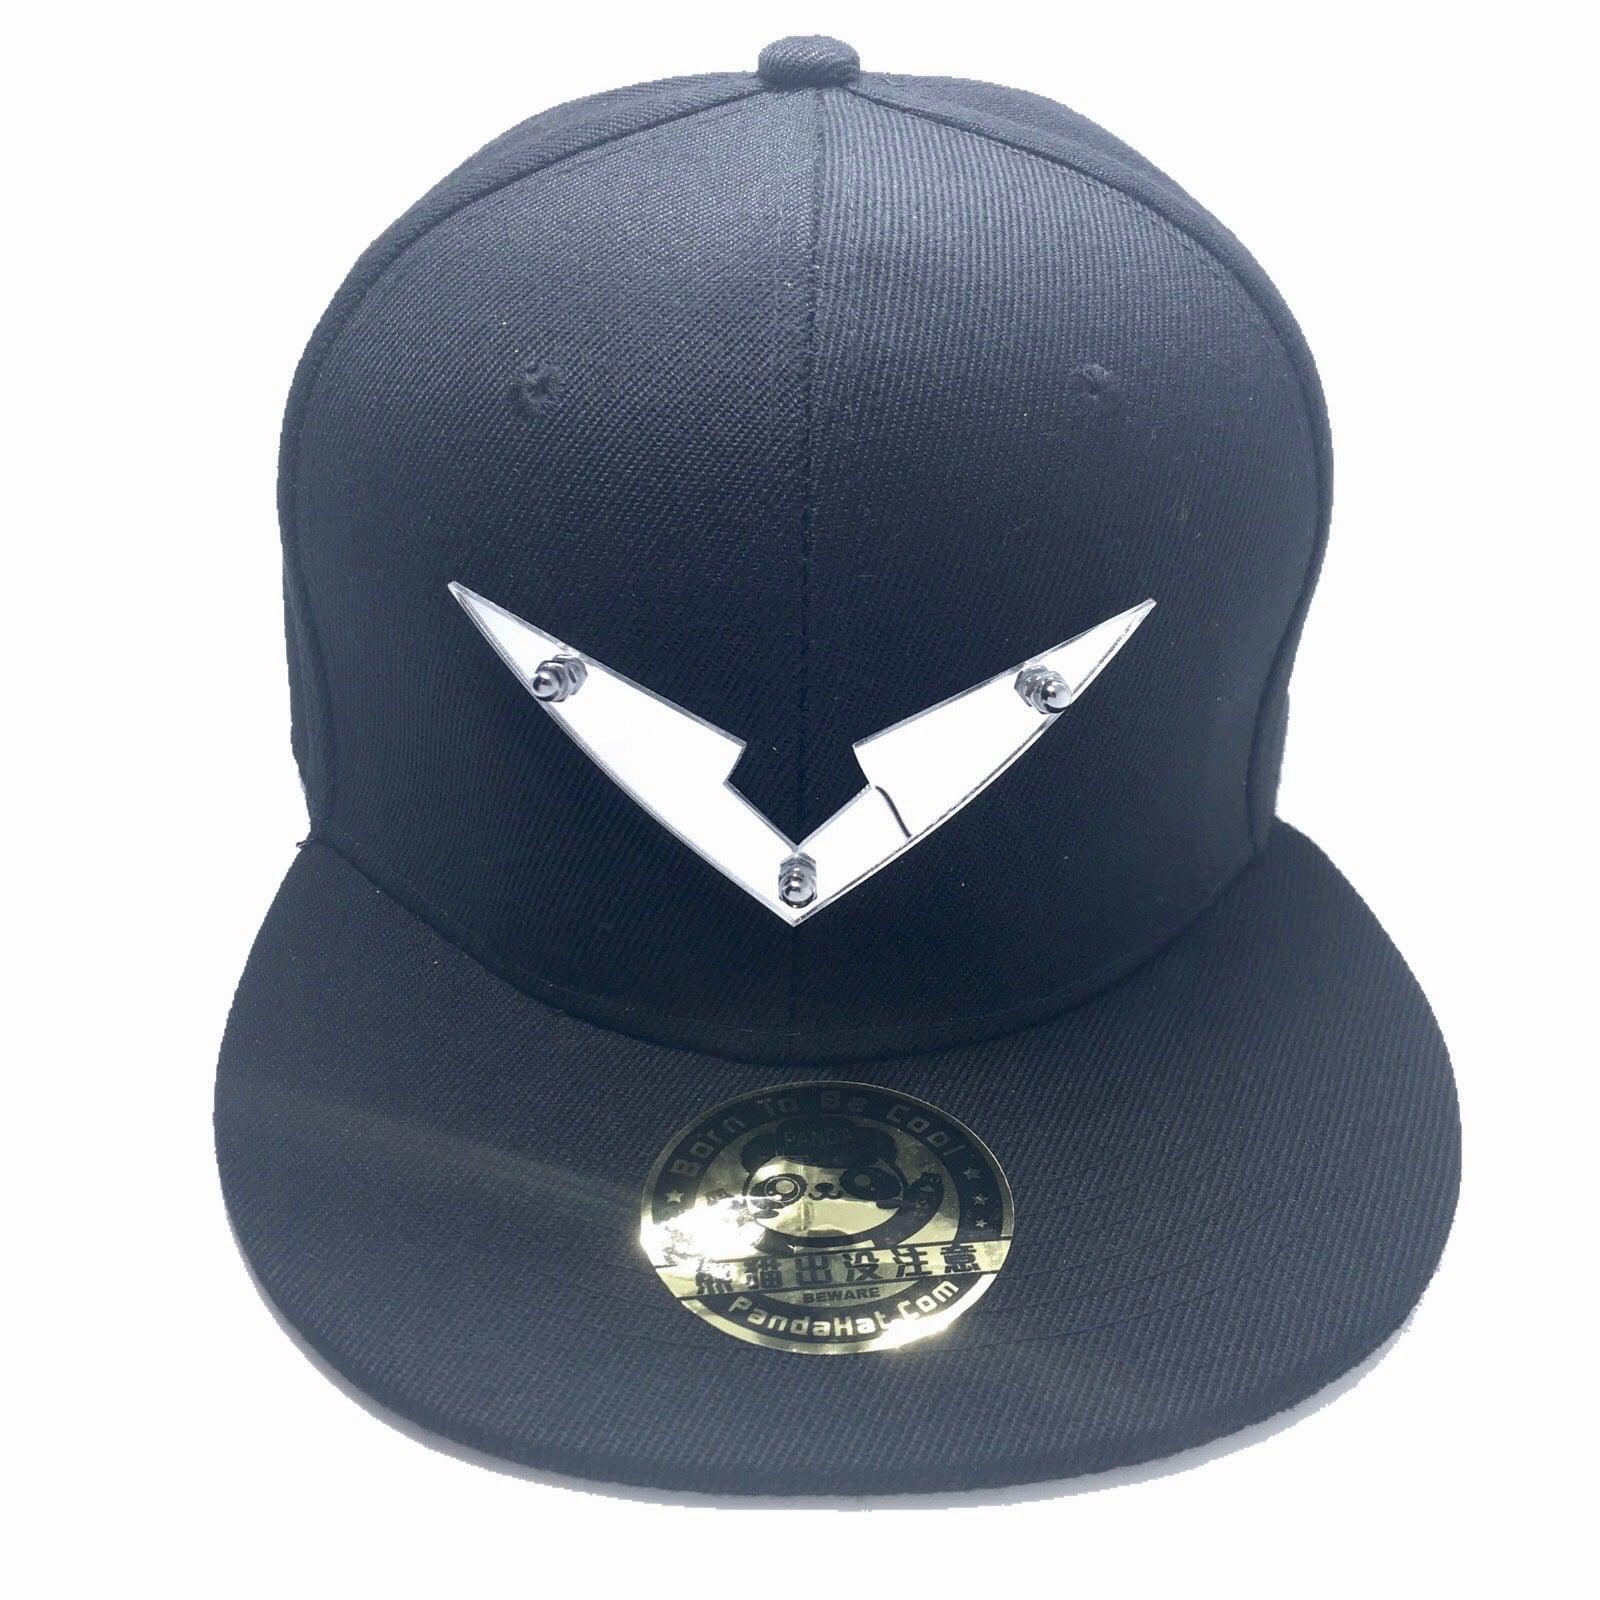 9f1d3fe92 PALADIN VOLTRON LOGO HAT IN BLACK